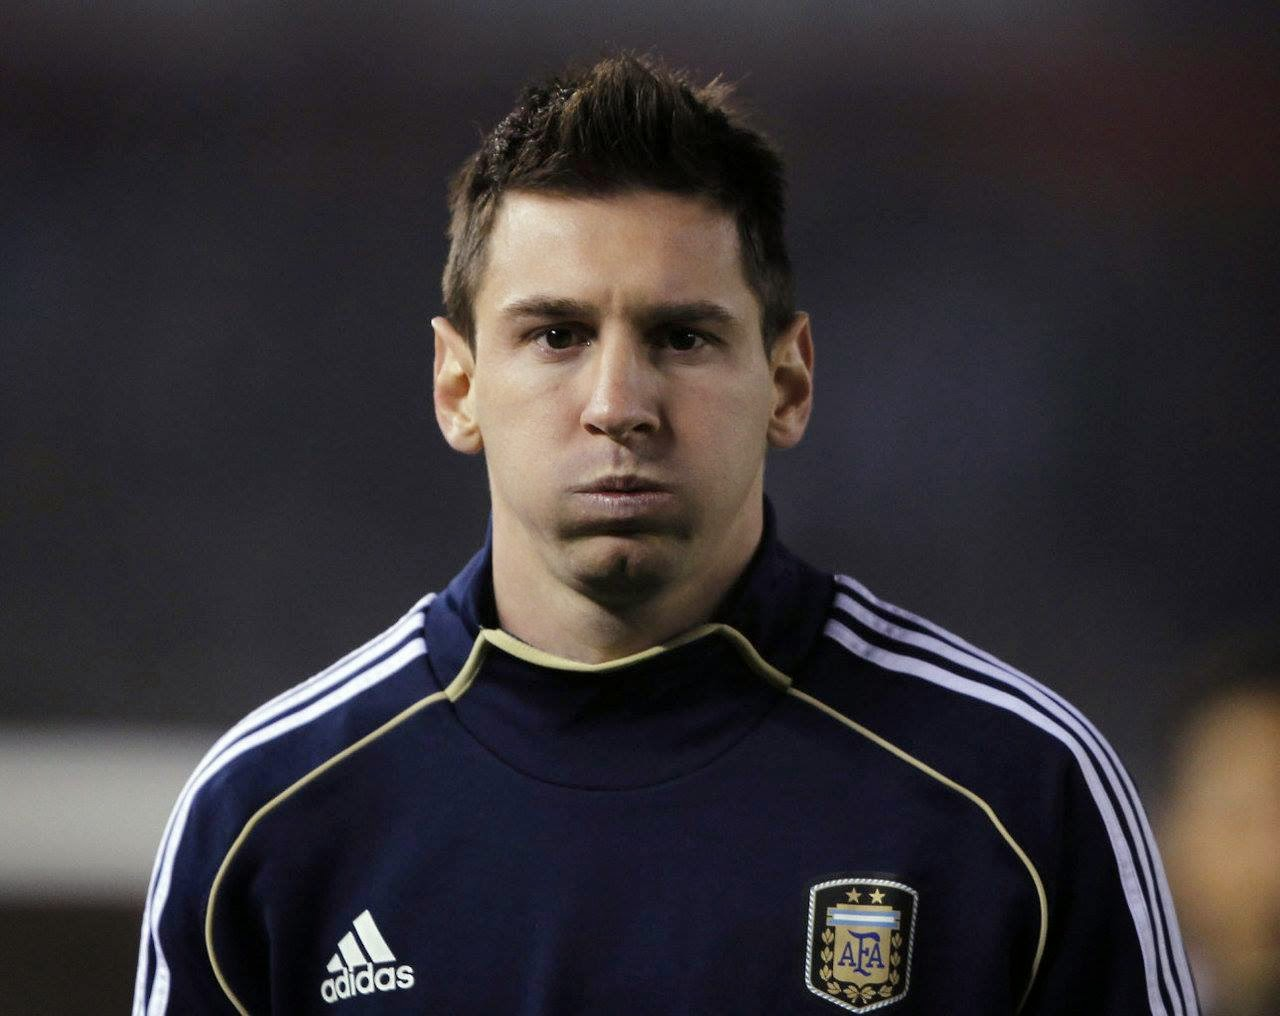 new lionel messi hairstyle 2014